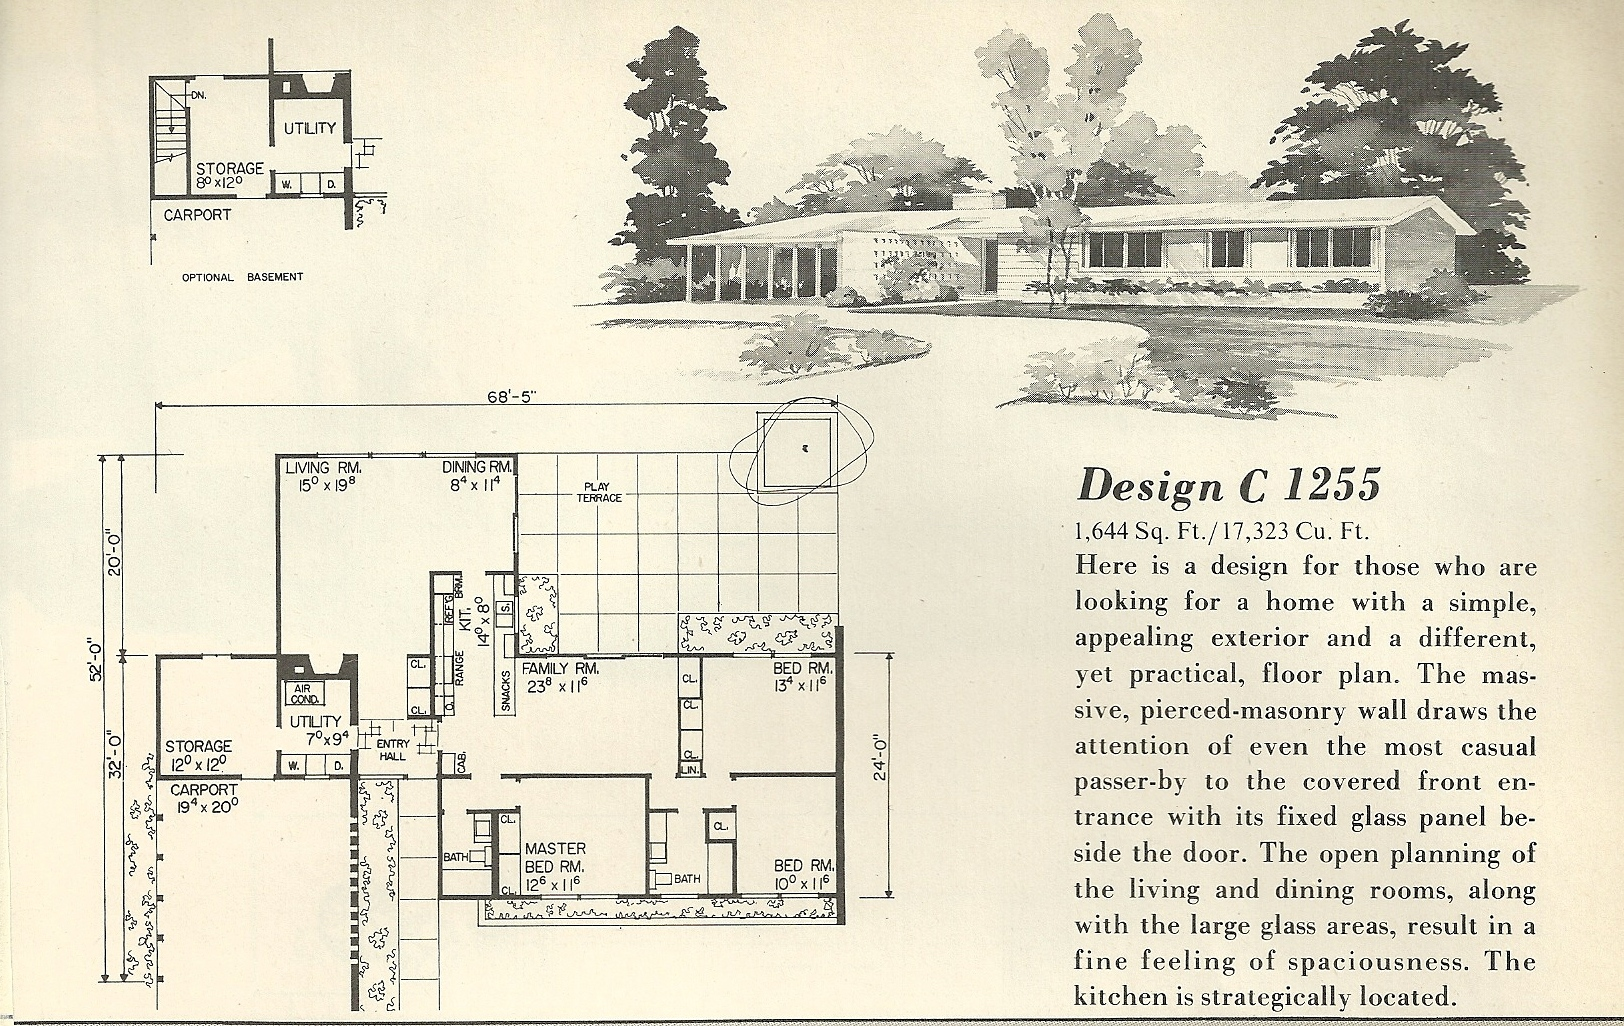 Vintage house plans 1255 antique alter ego for 1960 s home plans